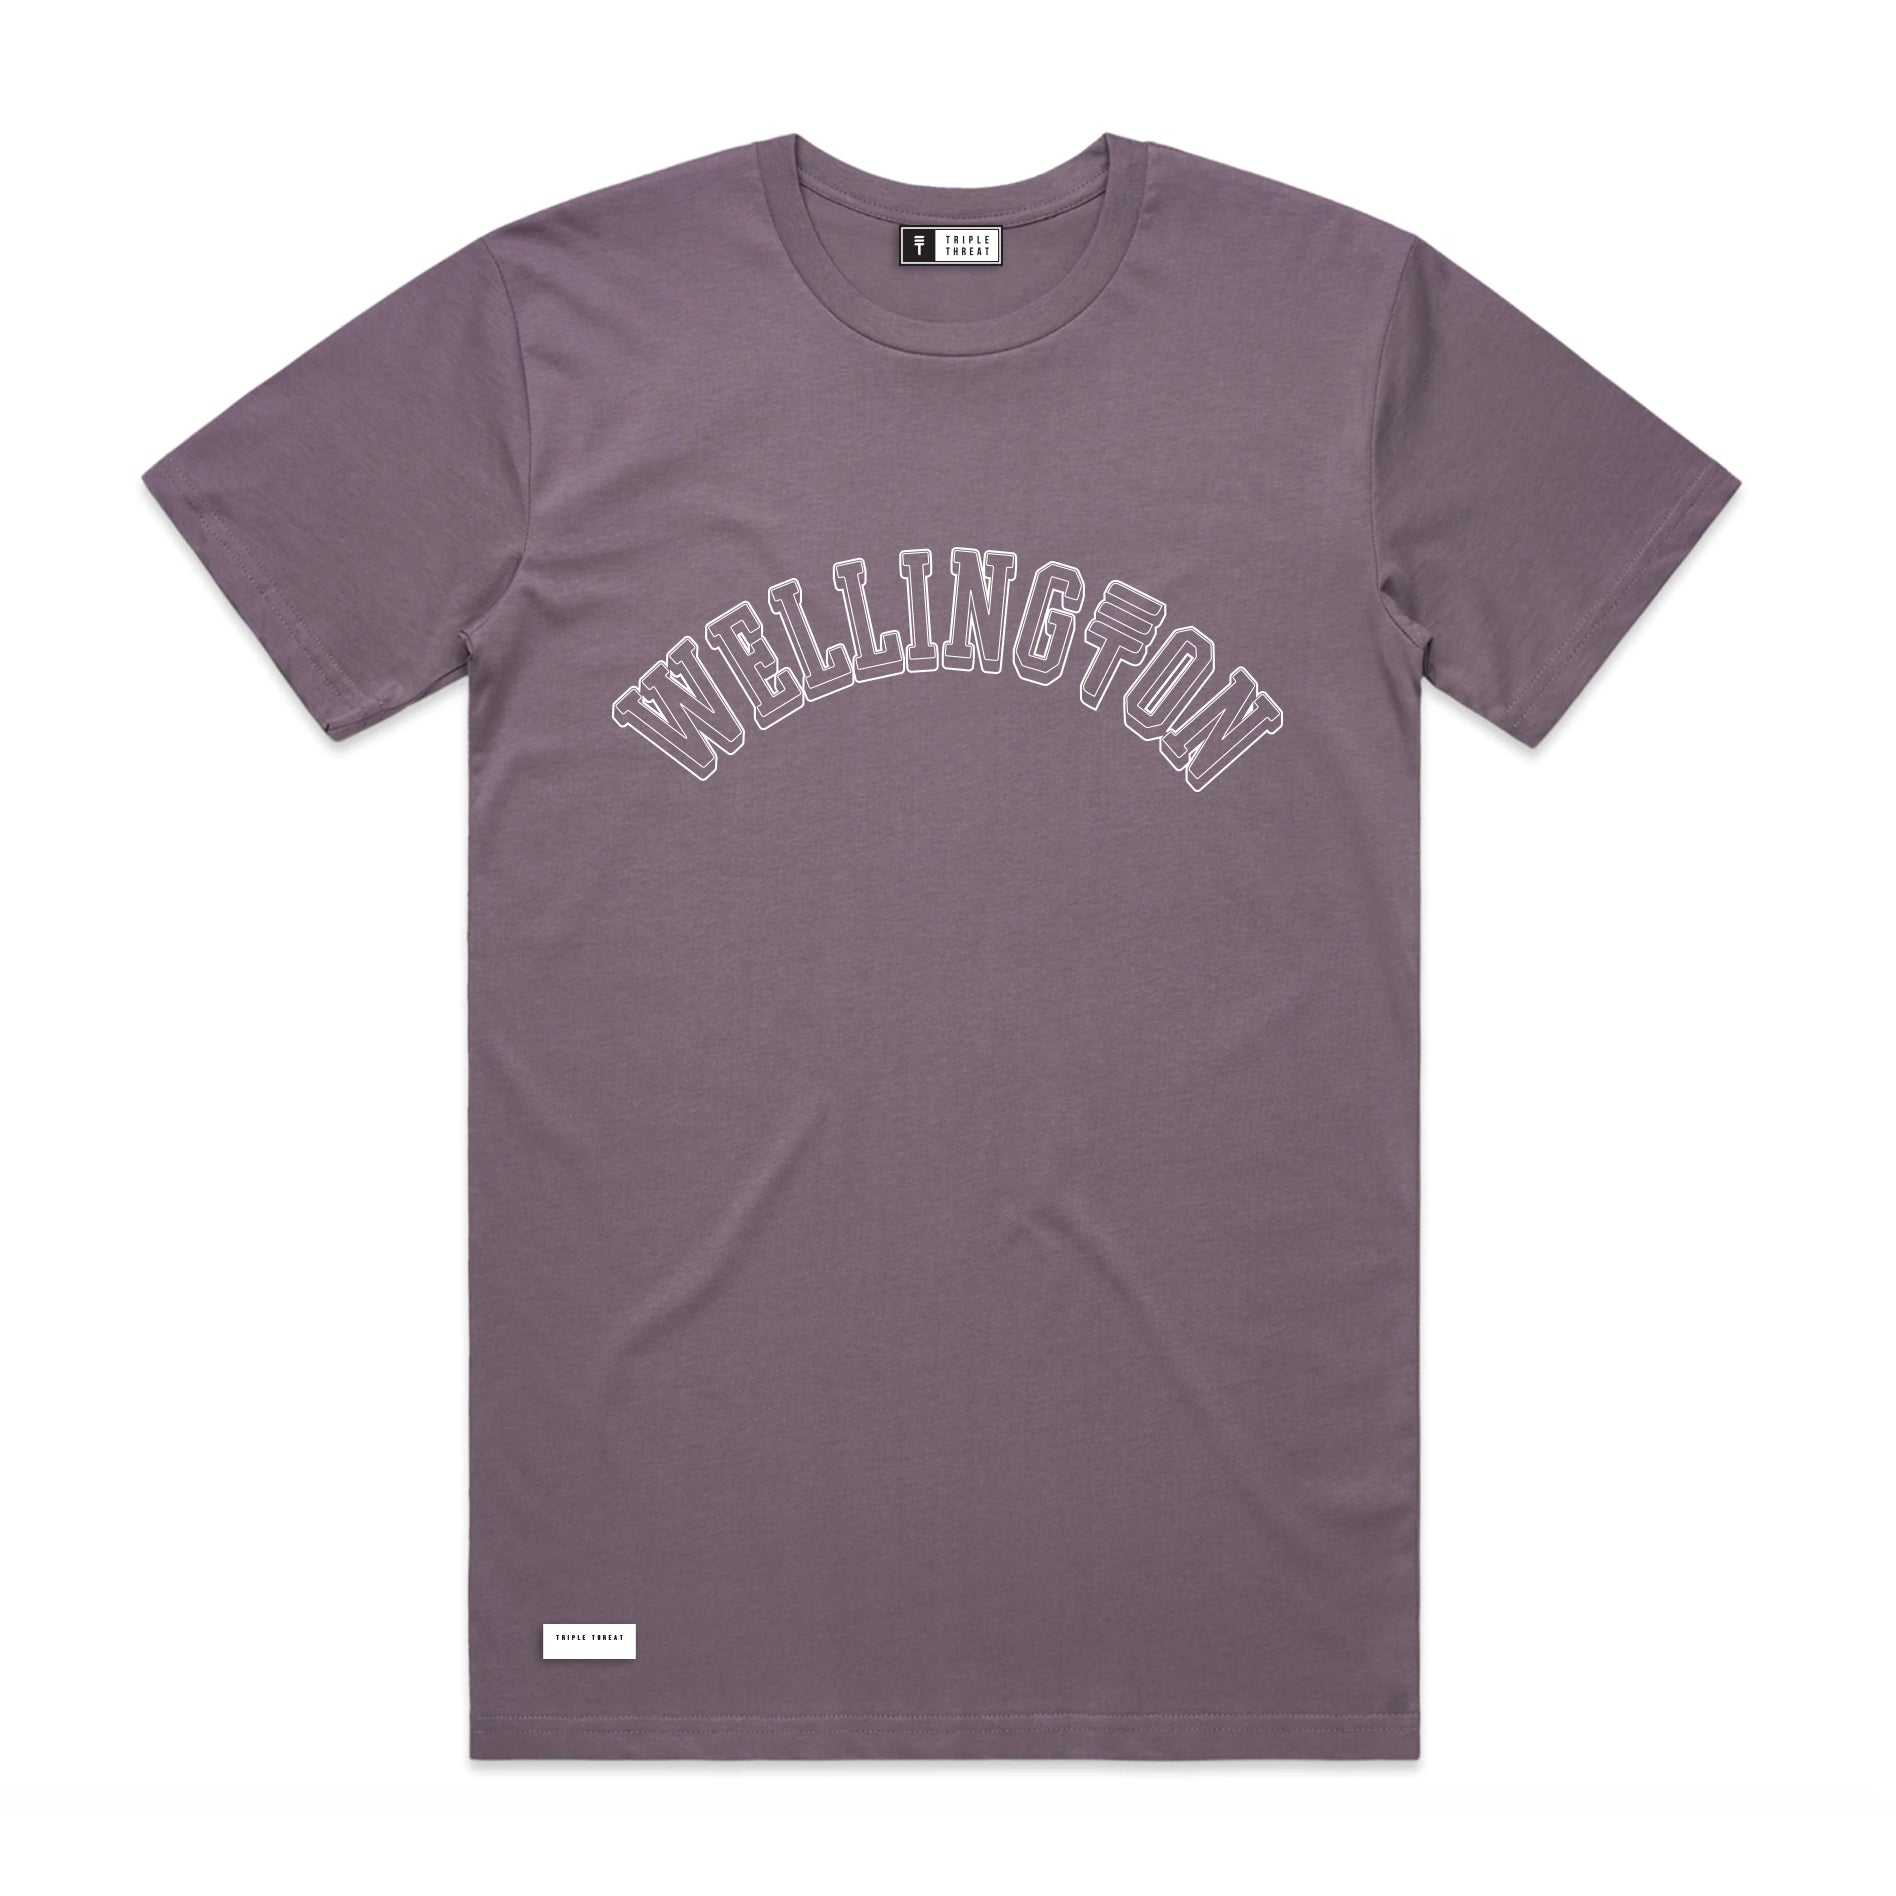 WELLINGTON T-SHIRT - PASTEL PURPLE